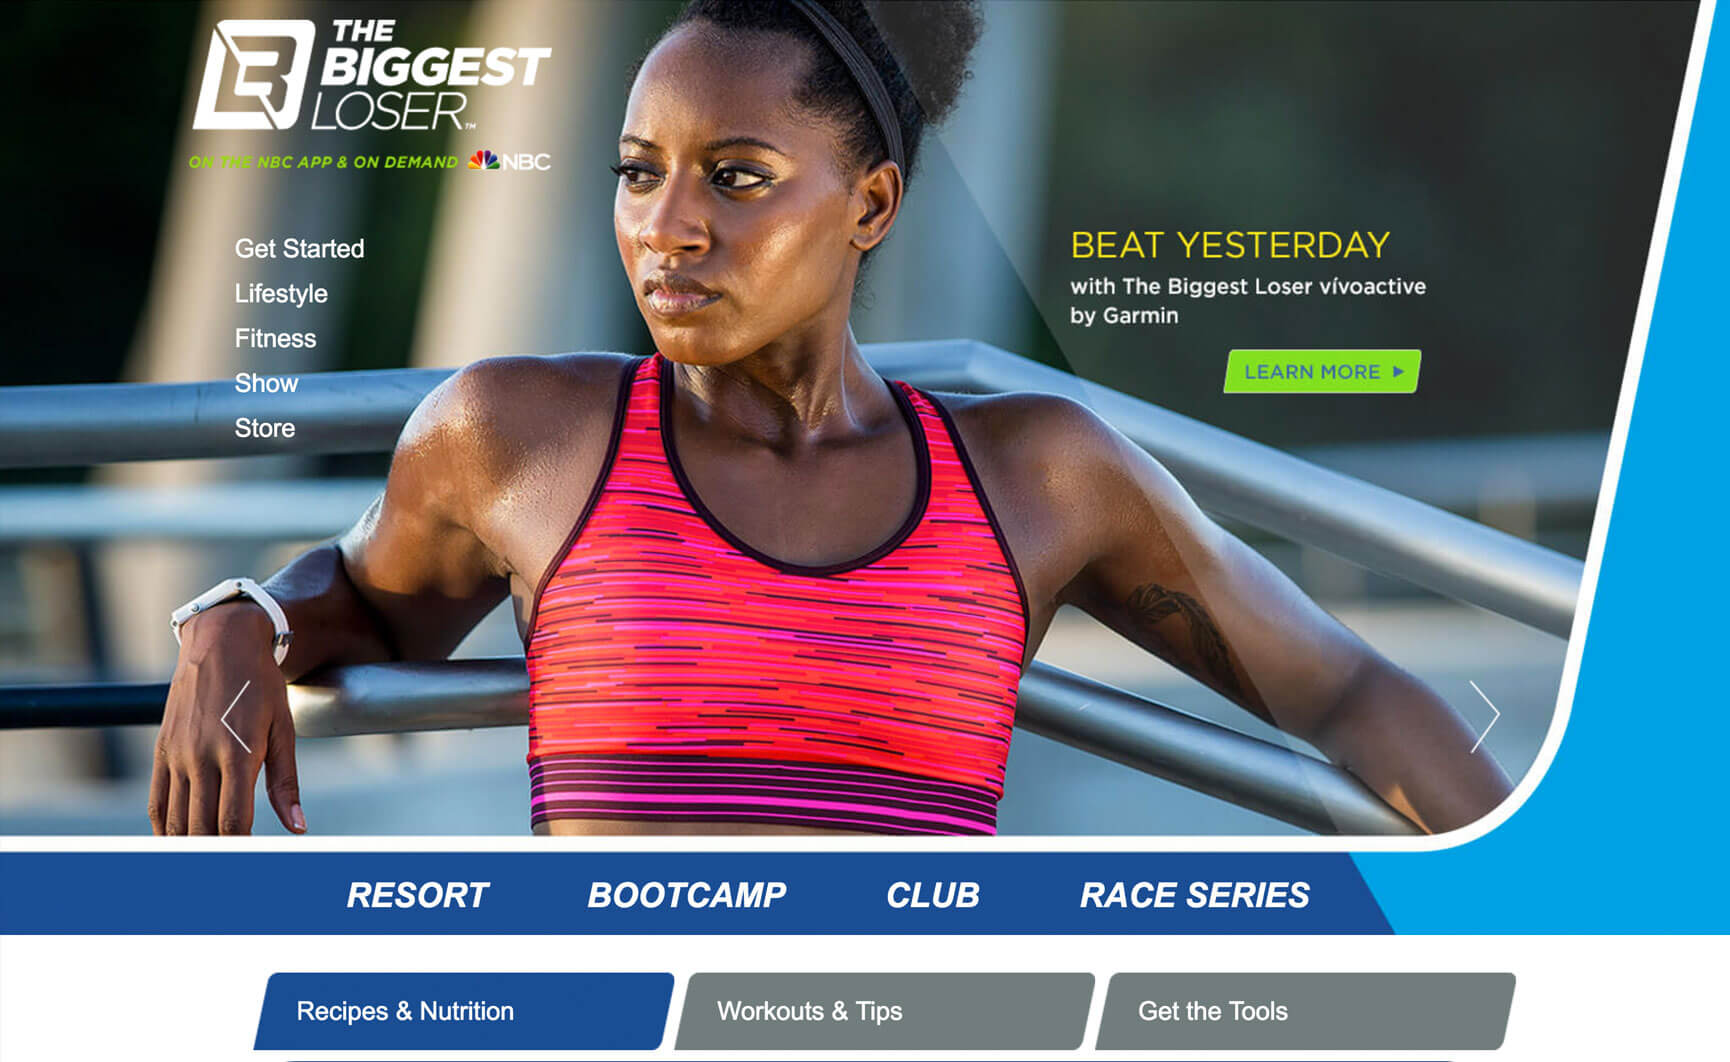 The Biggest loser website redesign